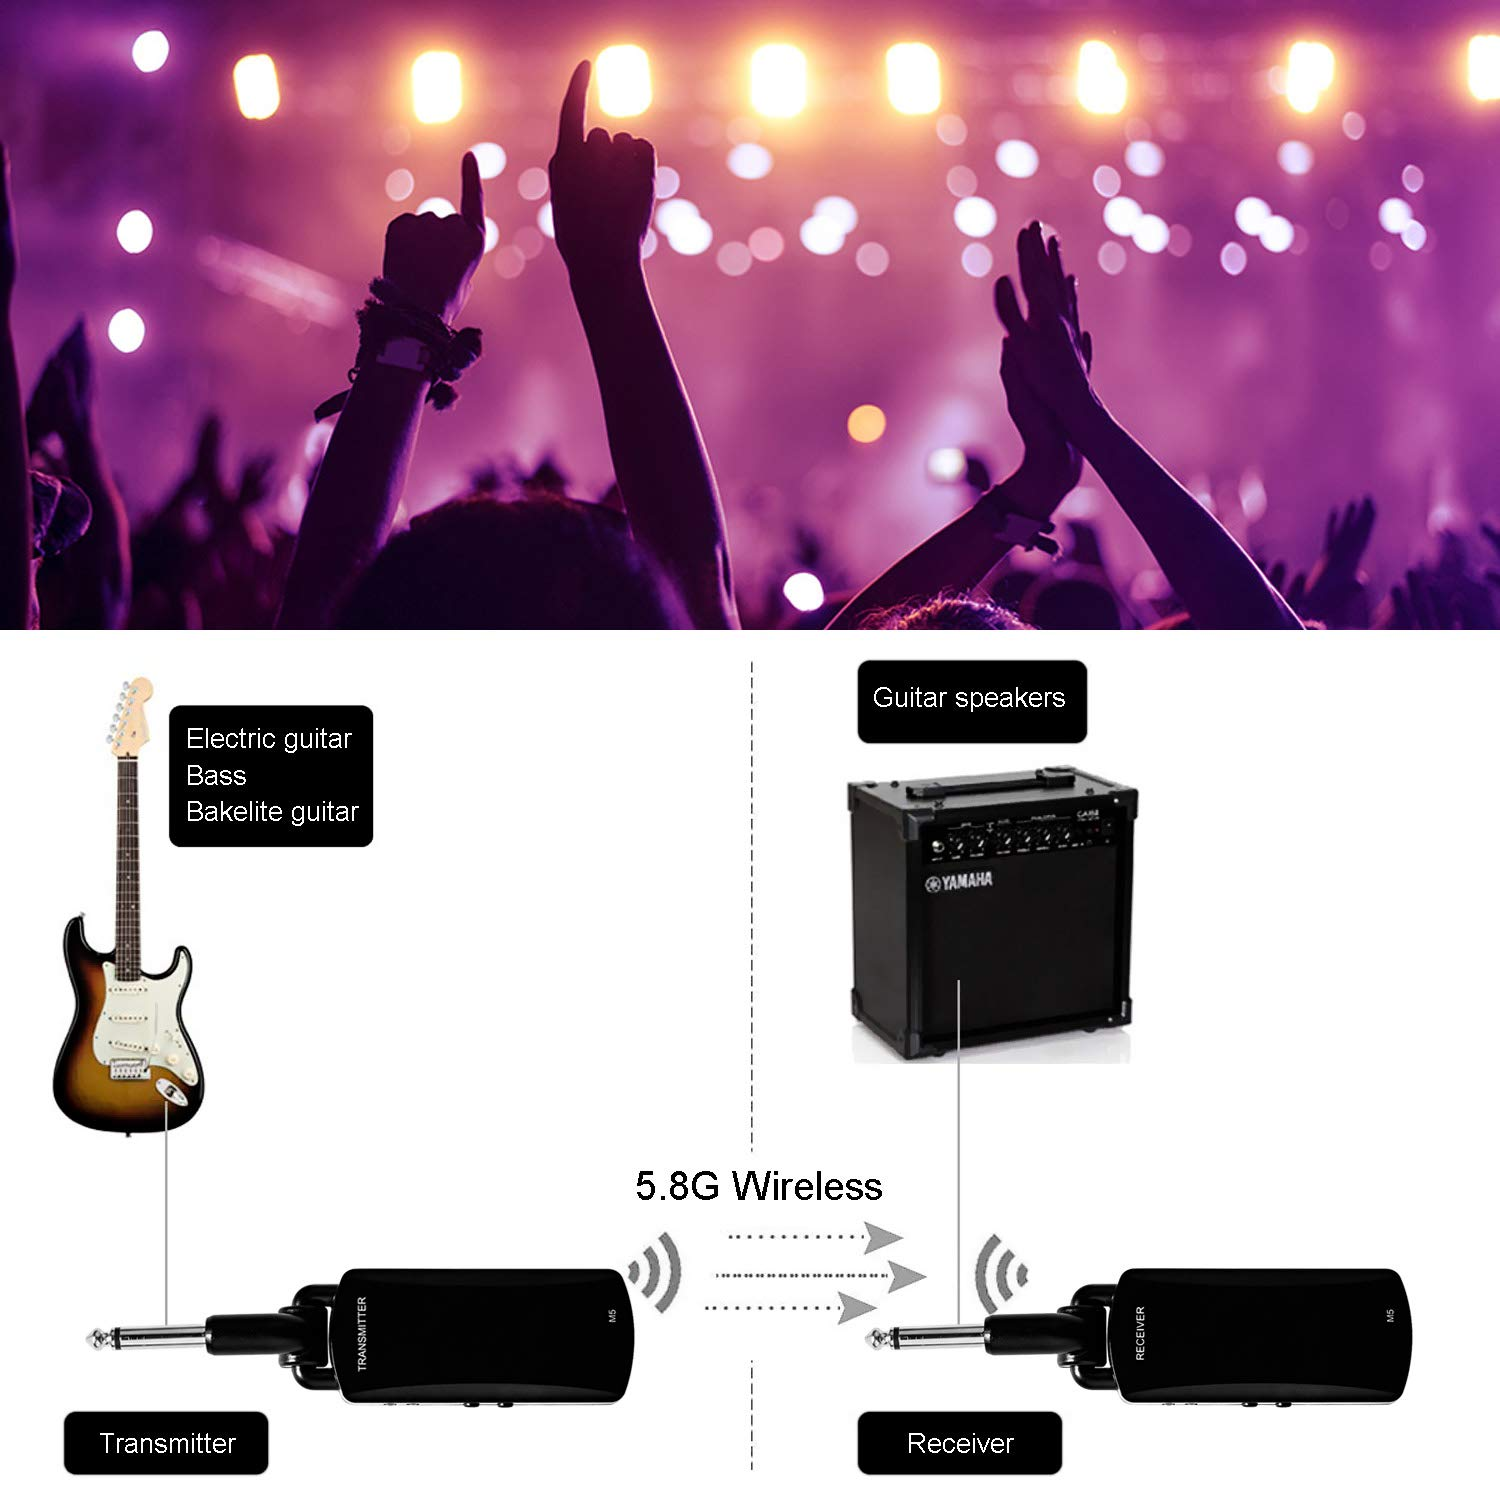 Wireless Guitar System - ZXK CO 5.8GHz Rechargeable Guitar Wireless Audio Transmitter Receiver - Electric Digital Guitar System Transmitter Receiver Set by ZXK CO (Image #2)